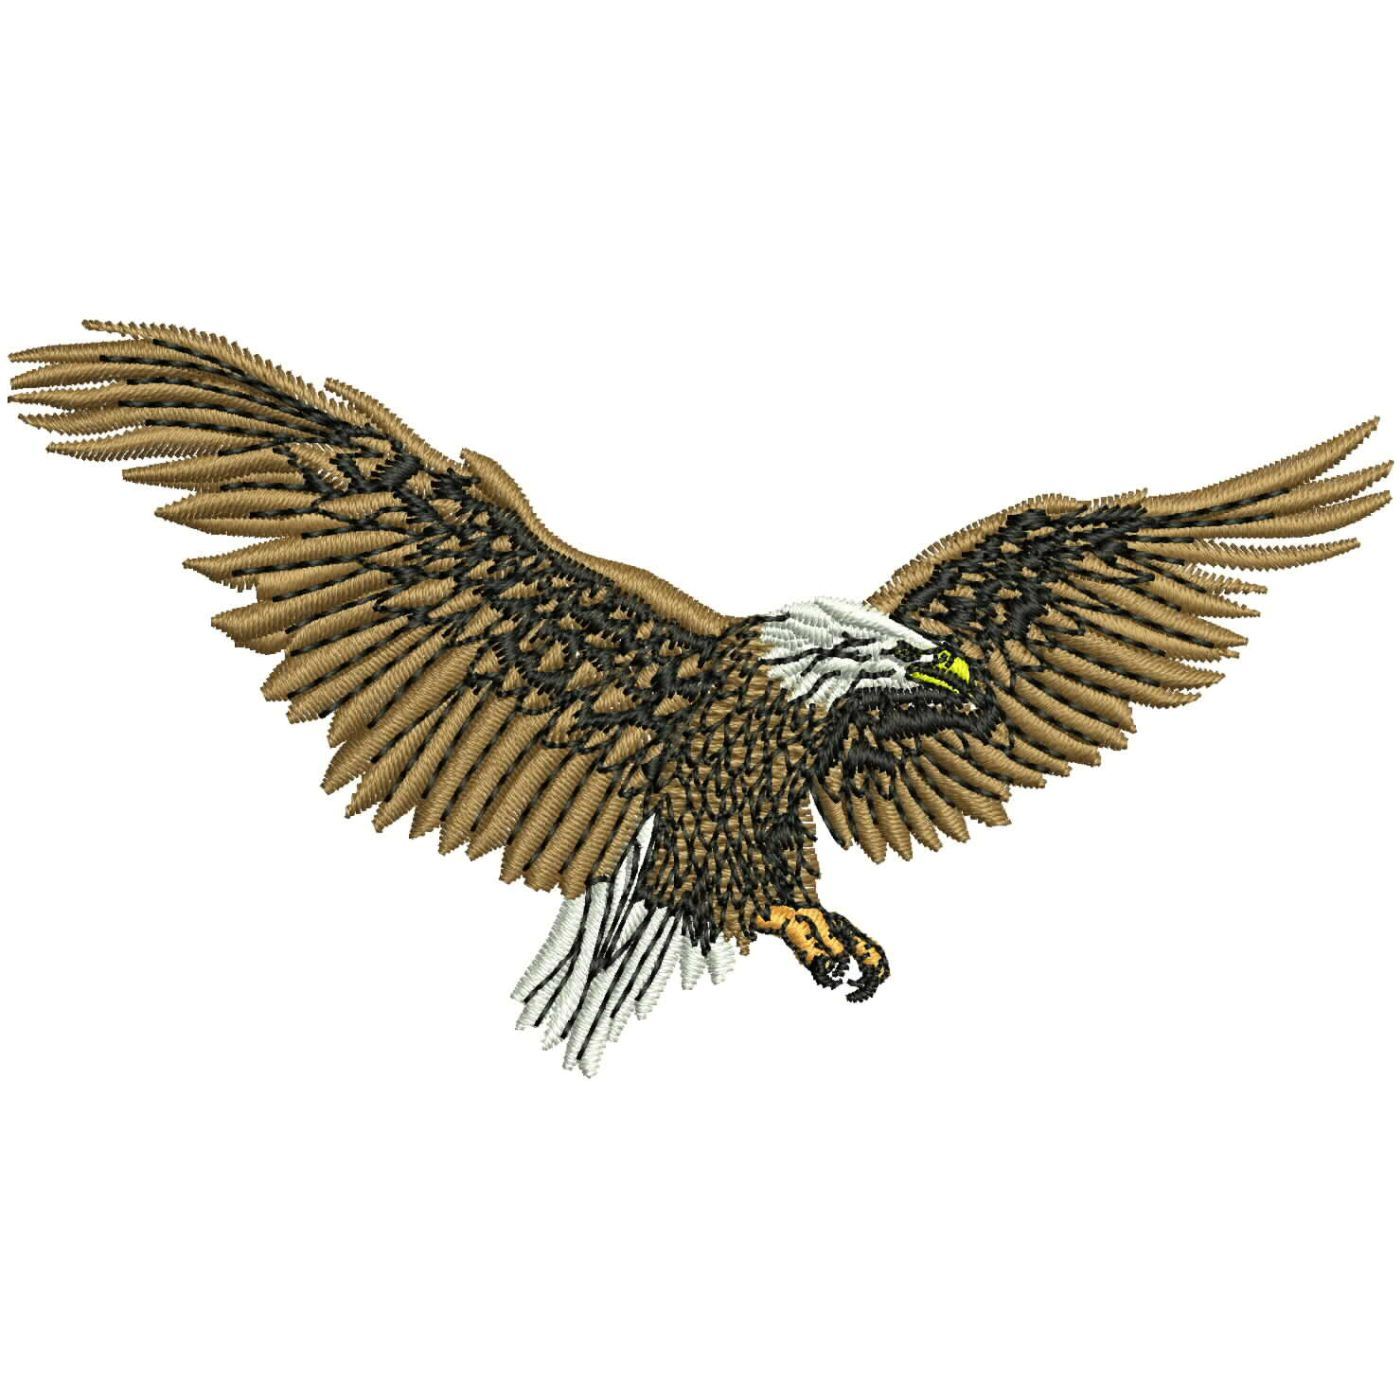 Wl001 Eagle Embroidery Design